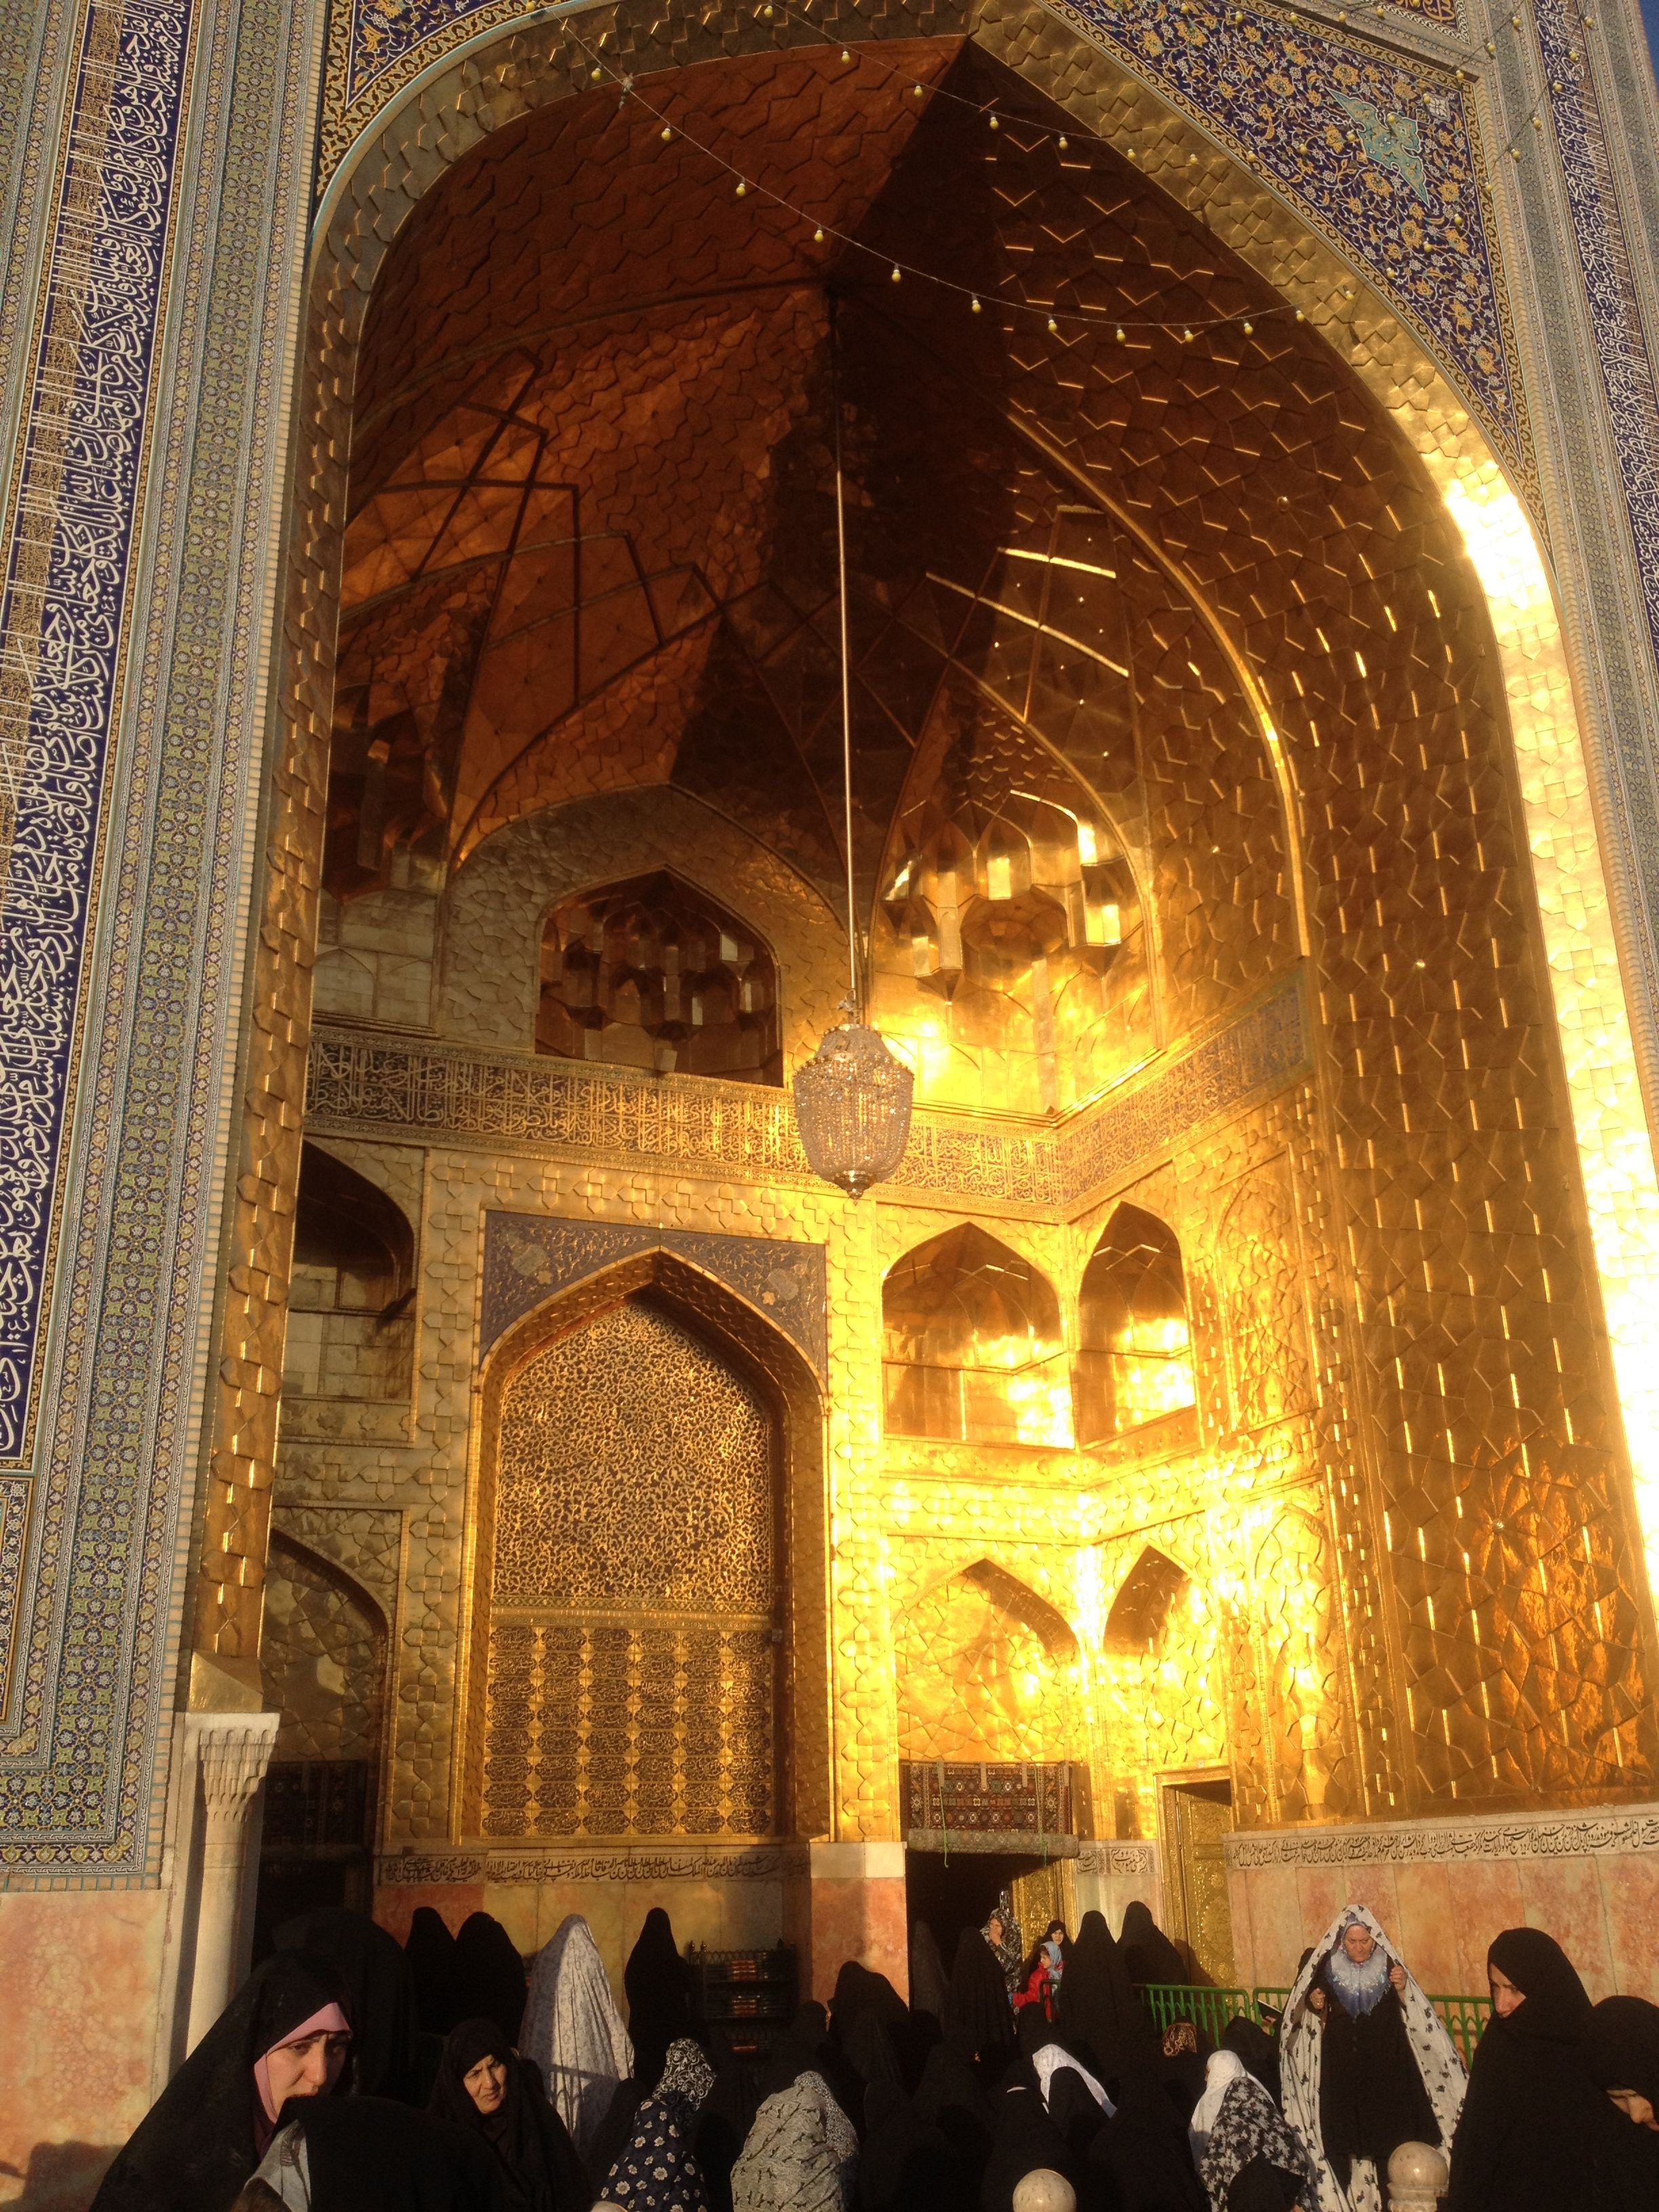 Maula Ali Shrine Wallpaper: The Entrance To The Shrine Of Imam Ali Raza (a.s.w.s.) In